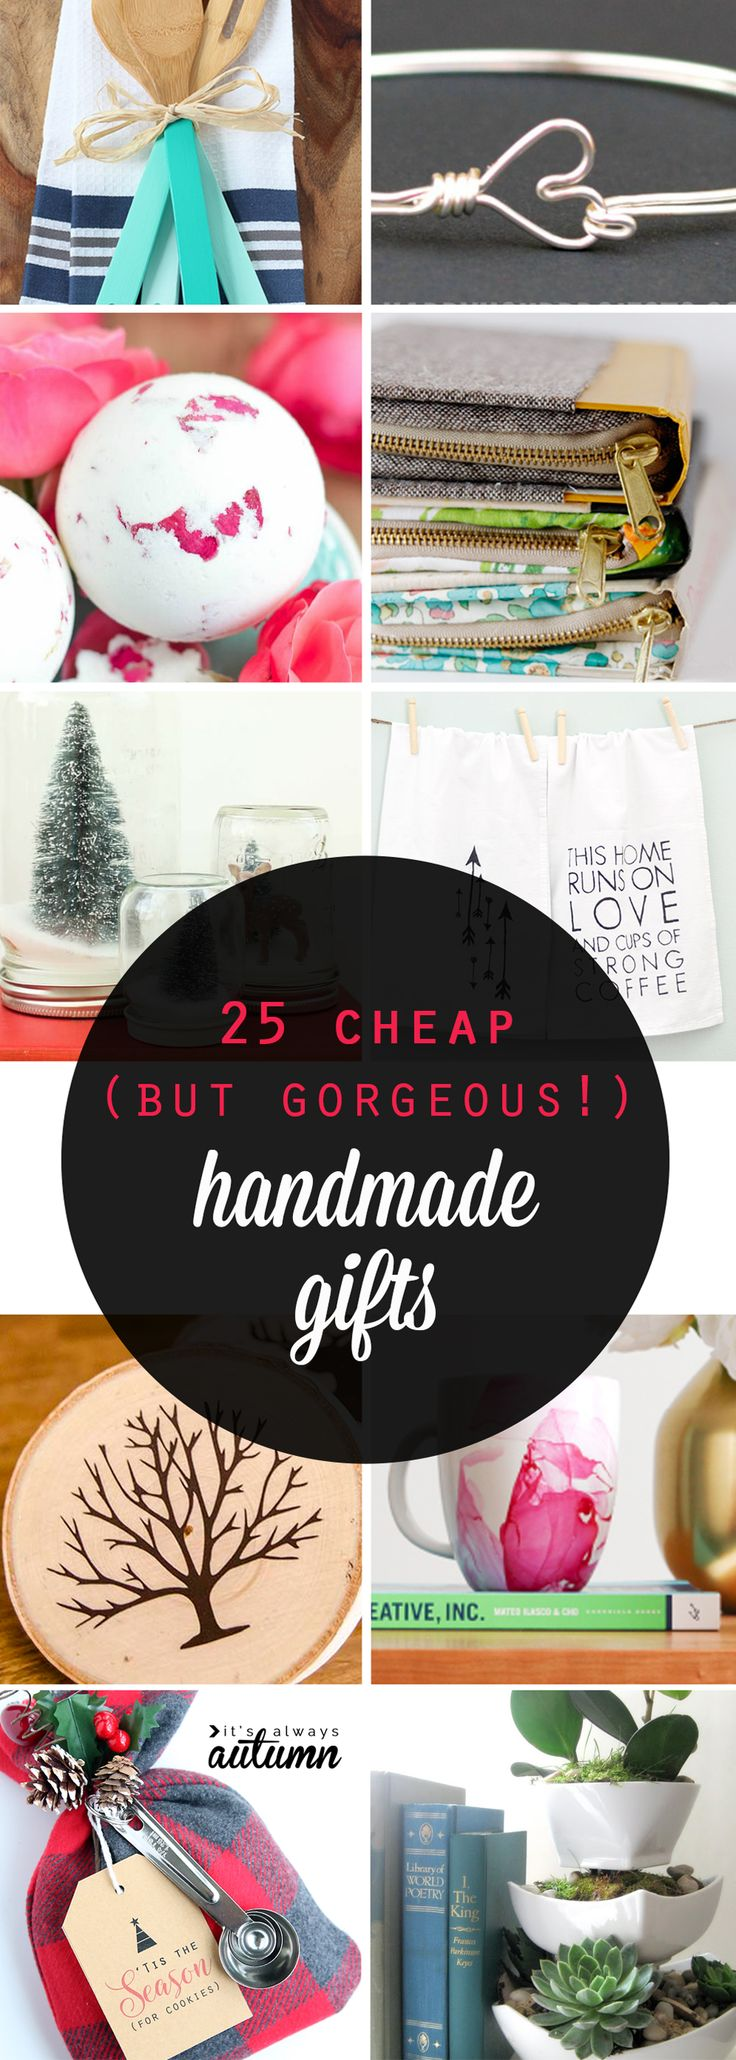 Best 25+ Handmade christmas gifts ideas on Pinterest | Handmade ...